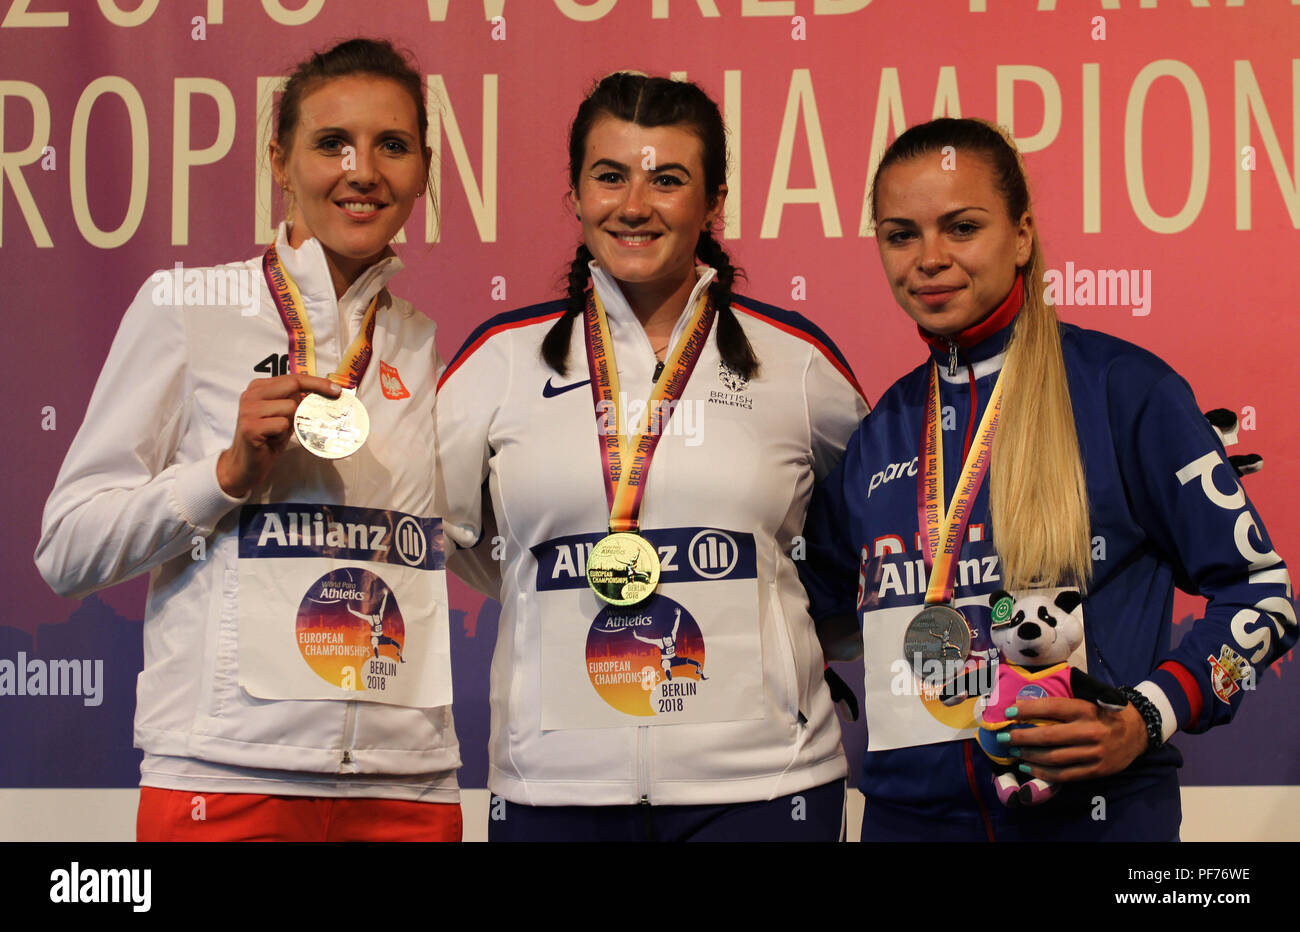 Berlin, Germany. 20th August 2018.Hollie Arnold and other athletes pose with their medals on Day 1 of the World Para Athletics European Championships in Berlin, Germany Credit: Ben Booth/Alamy Live News - Stock Image